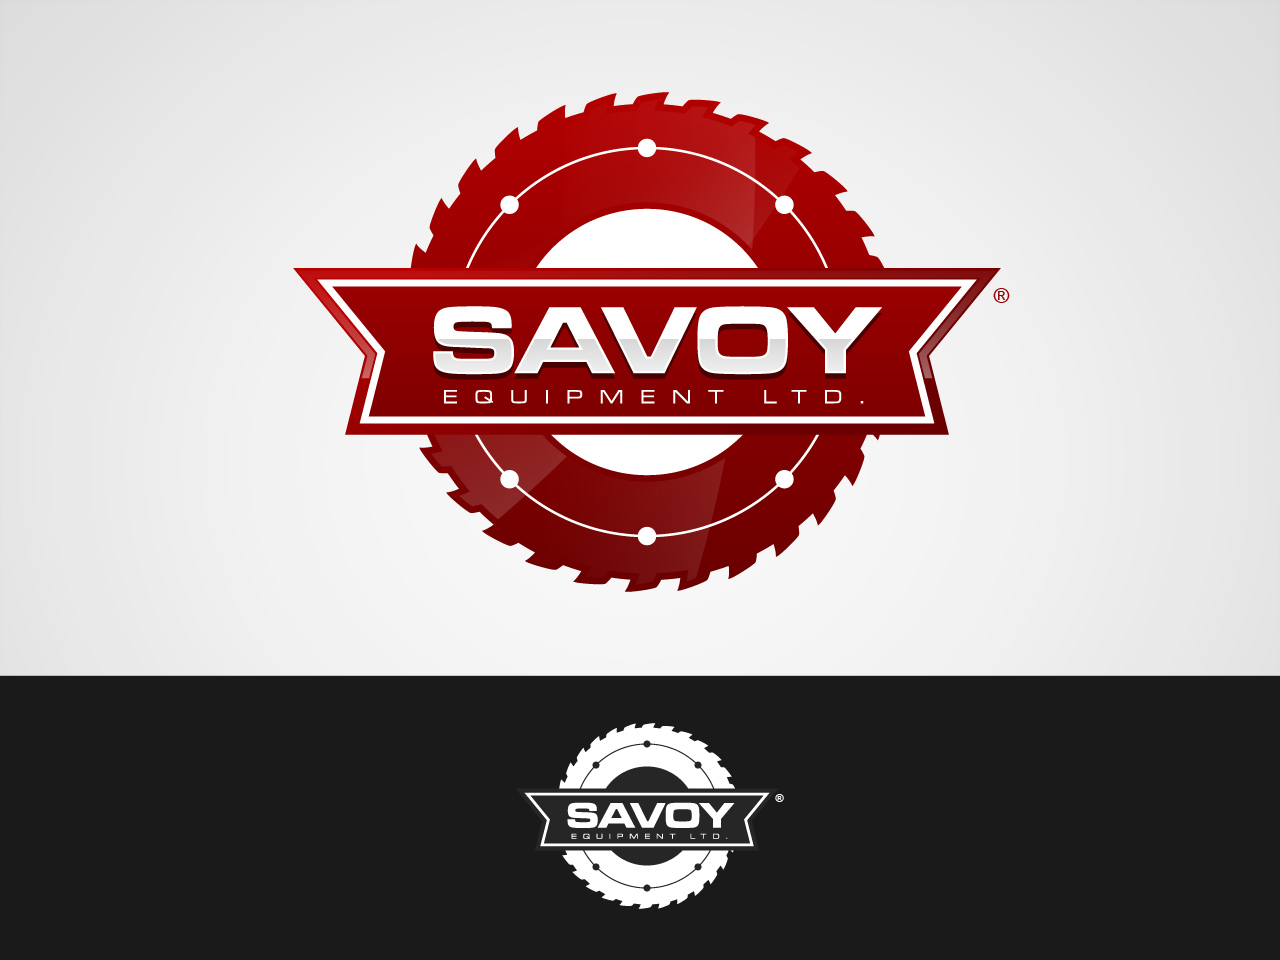 Logo Design by jpbituin - Entry No. 158 in the Logo Design Contest Inspiring Logo Design for Savoy Equipment Ltd..